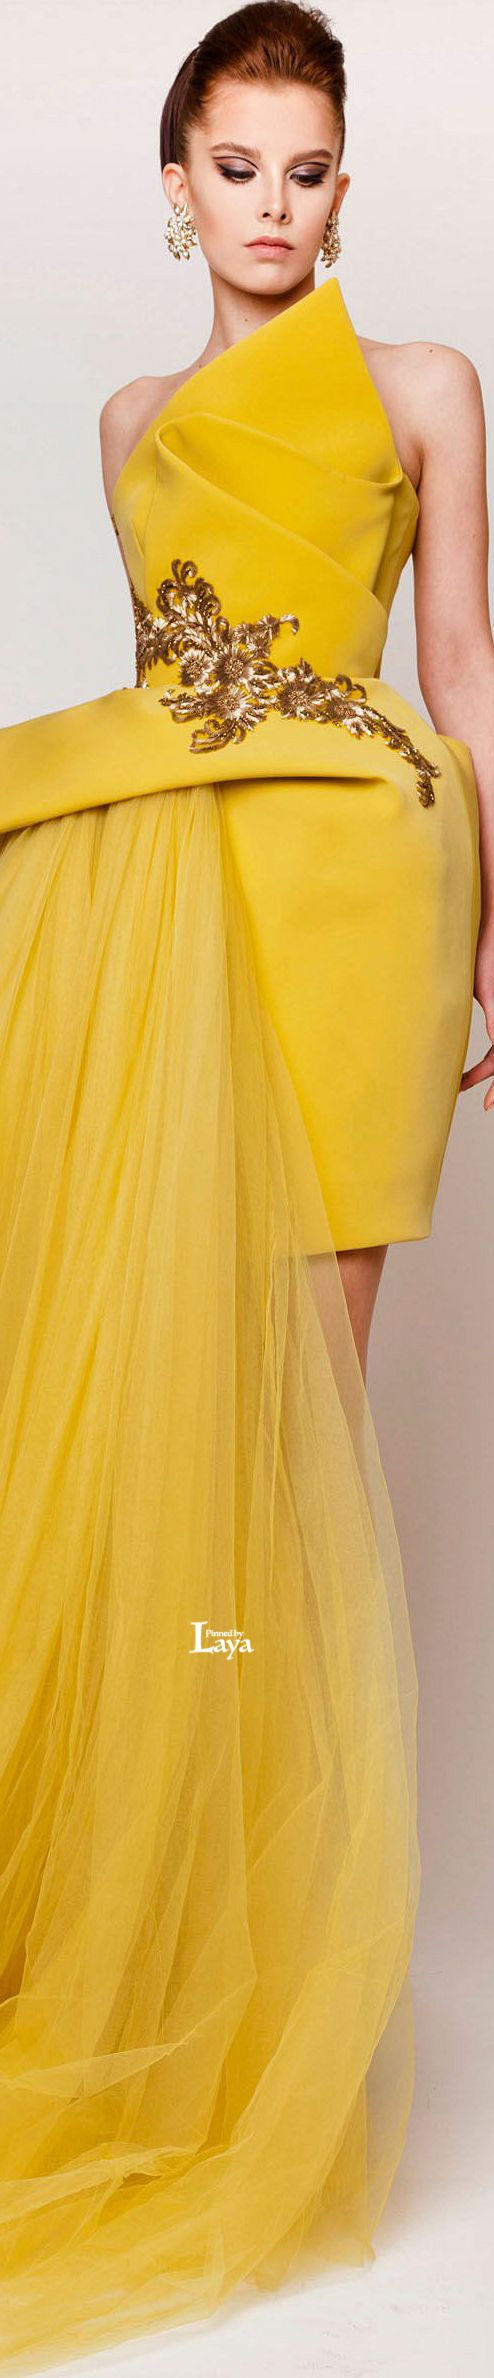 ♔LAYA♔AZZI & OSTA S/S 2015 COUTURE♔